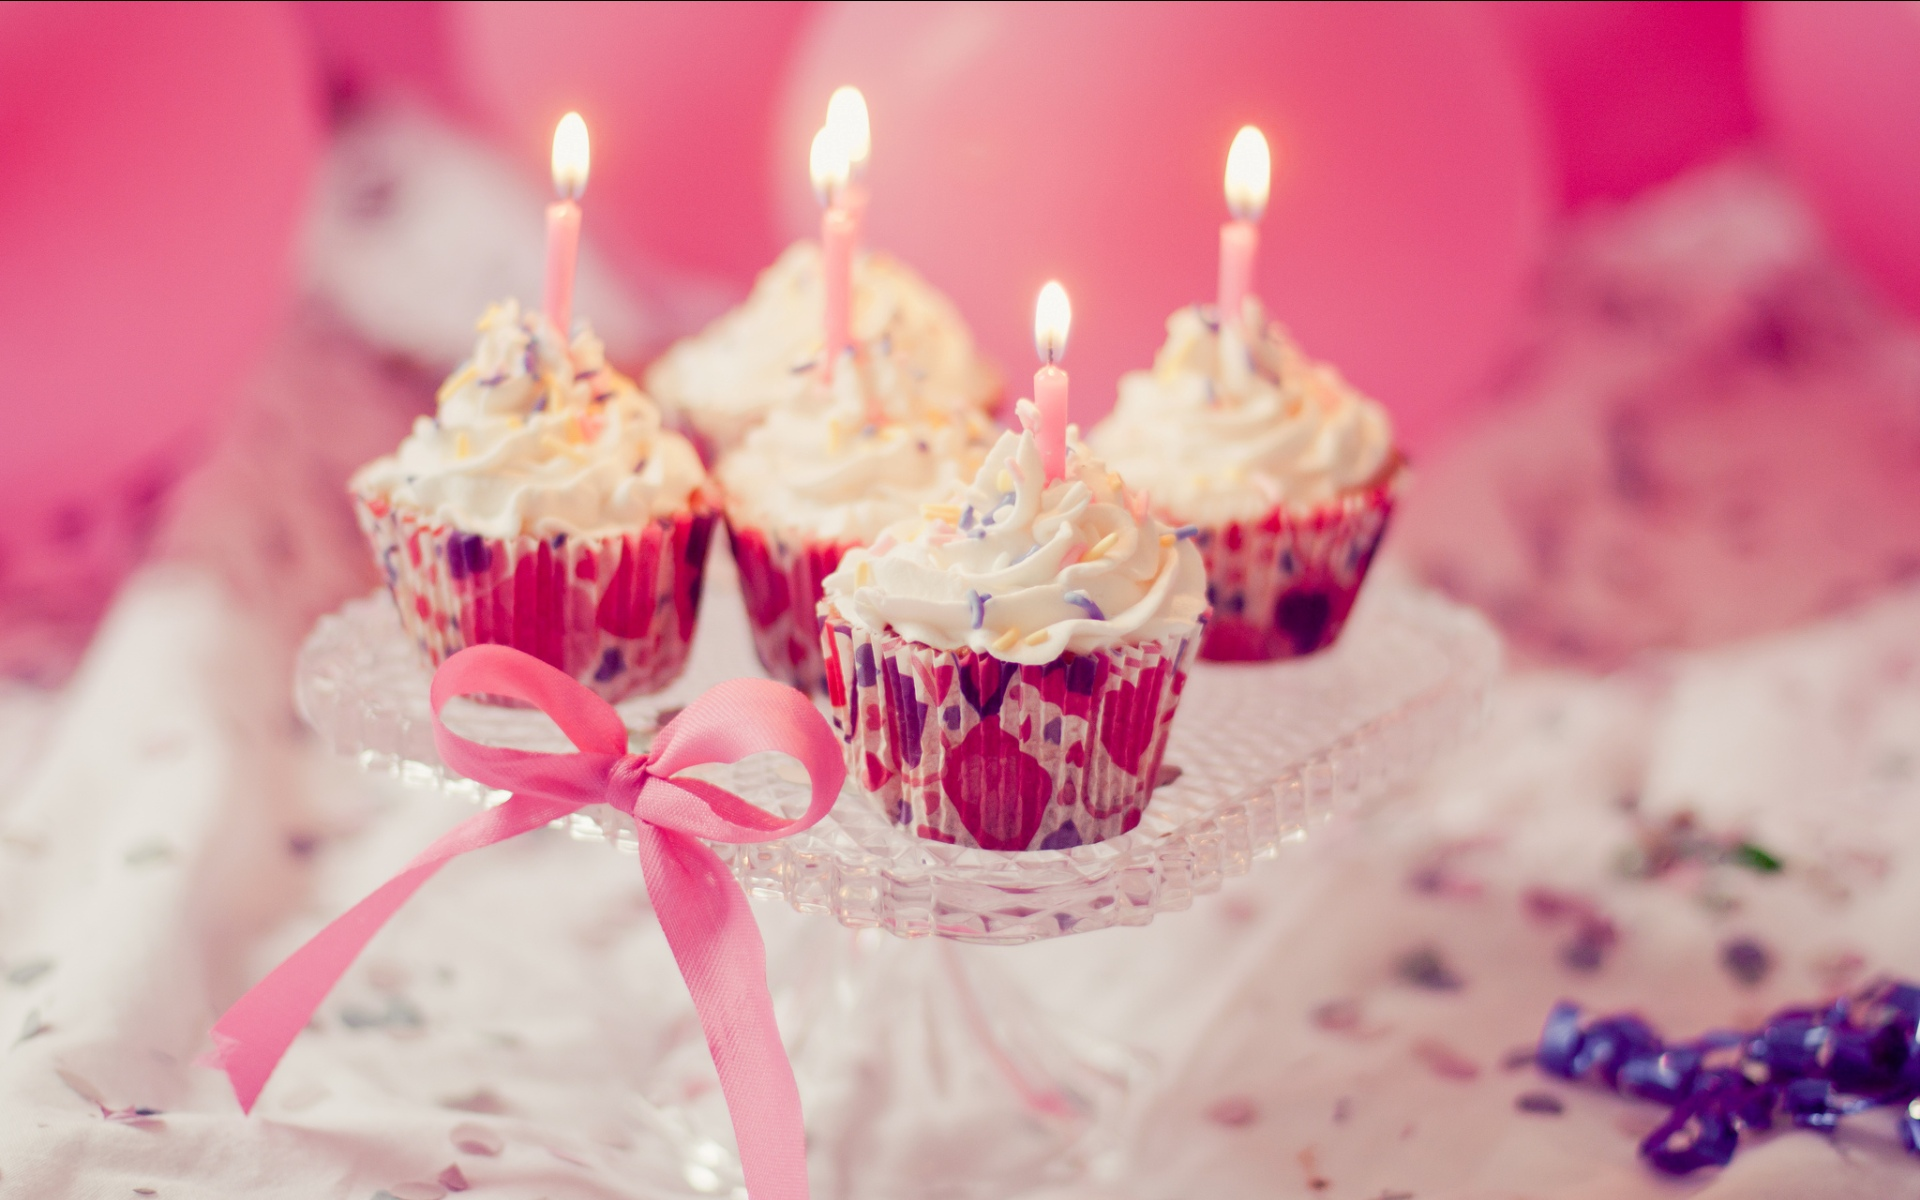 13 Birthday Cakes For Women With Pretty Candles Photo Happy